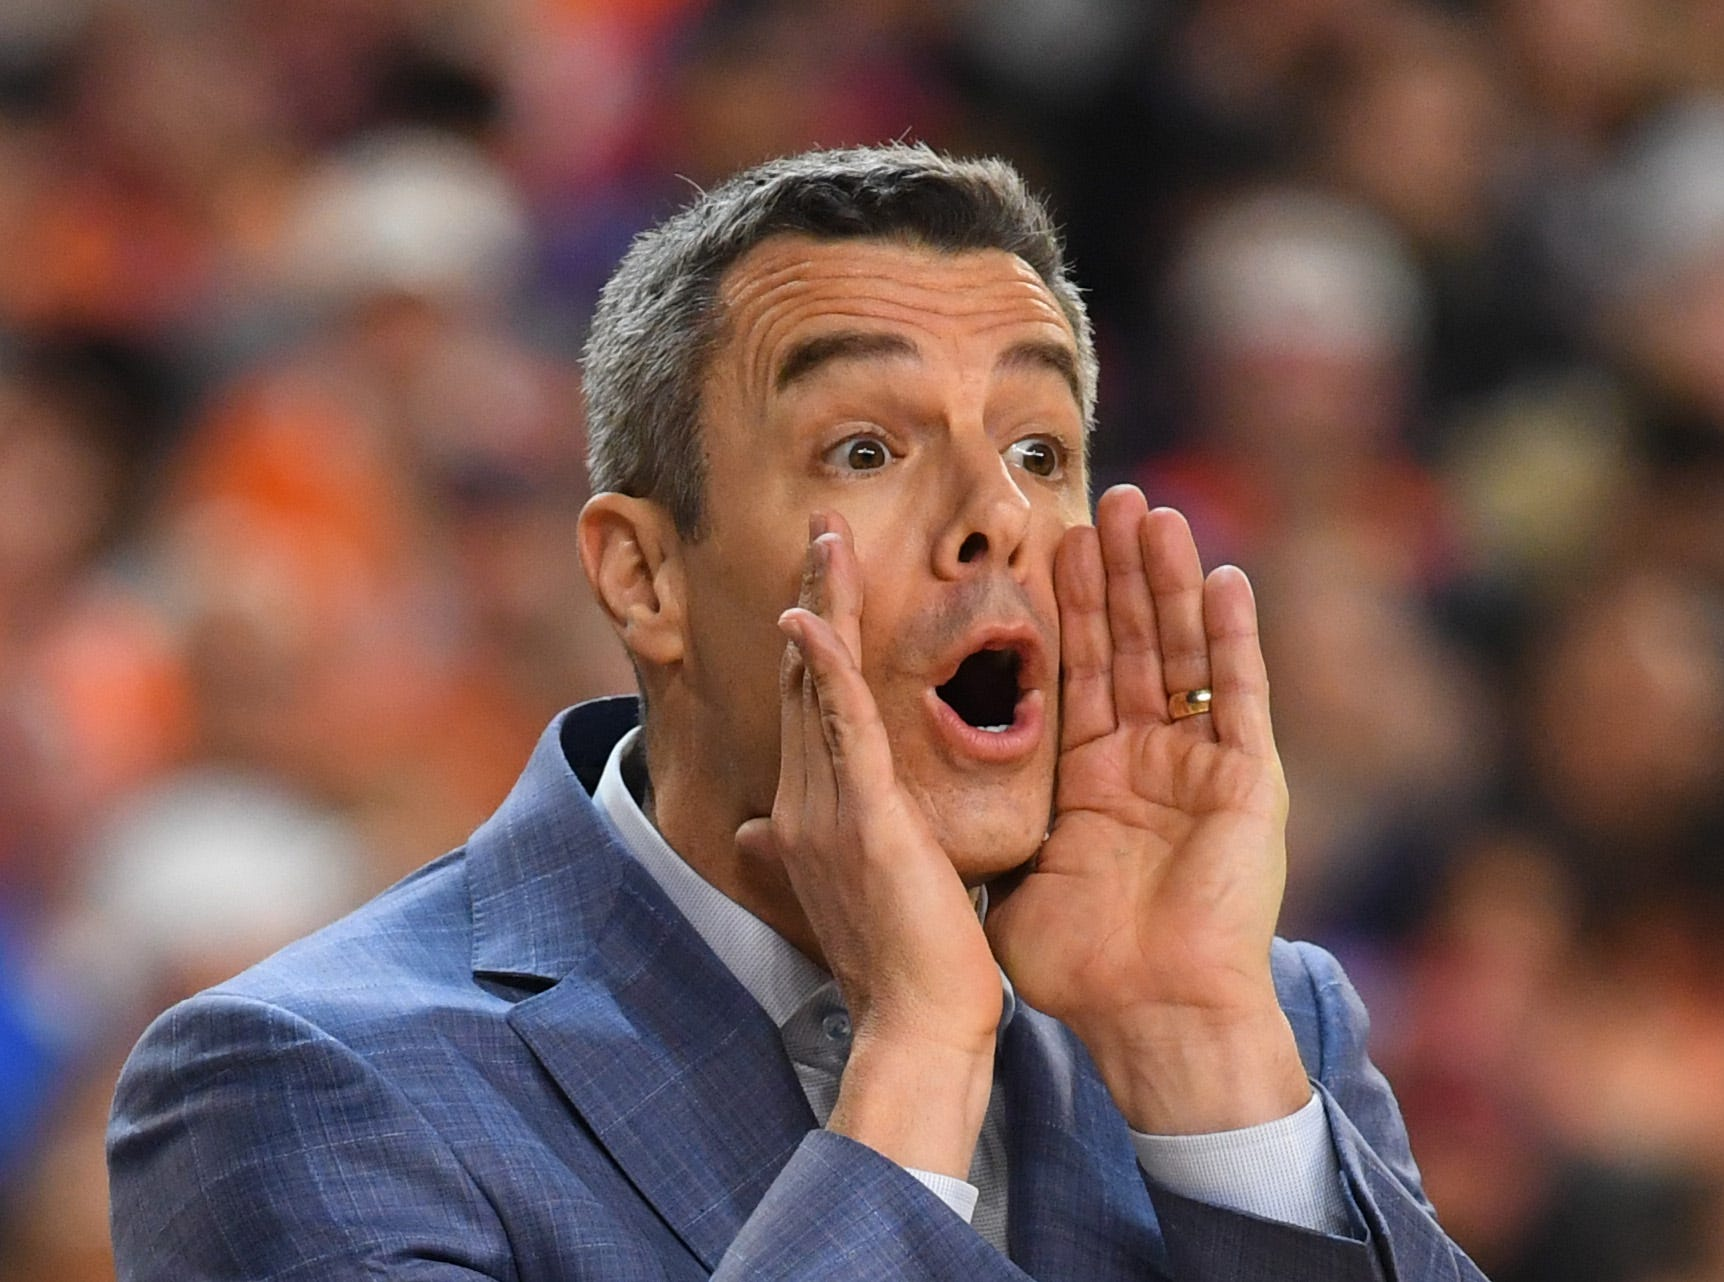 Apr 8, 2019; Minneapolis, MN, USA; Virginia Cavaliers head coach Tony Bennett yells from the sideline against the Texas Tech Red Raiders in the championship game of the 2019 men's Final Four at US Bank Stadium. Mandatory Credit: Robert Deutsch-USA TODAY Sports